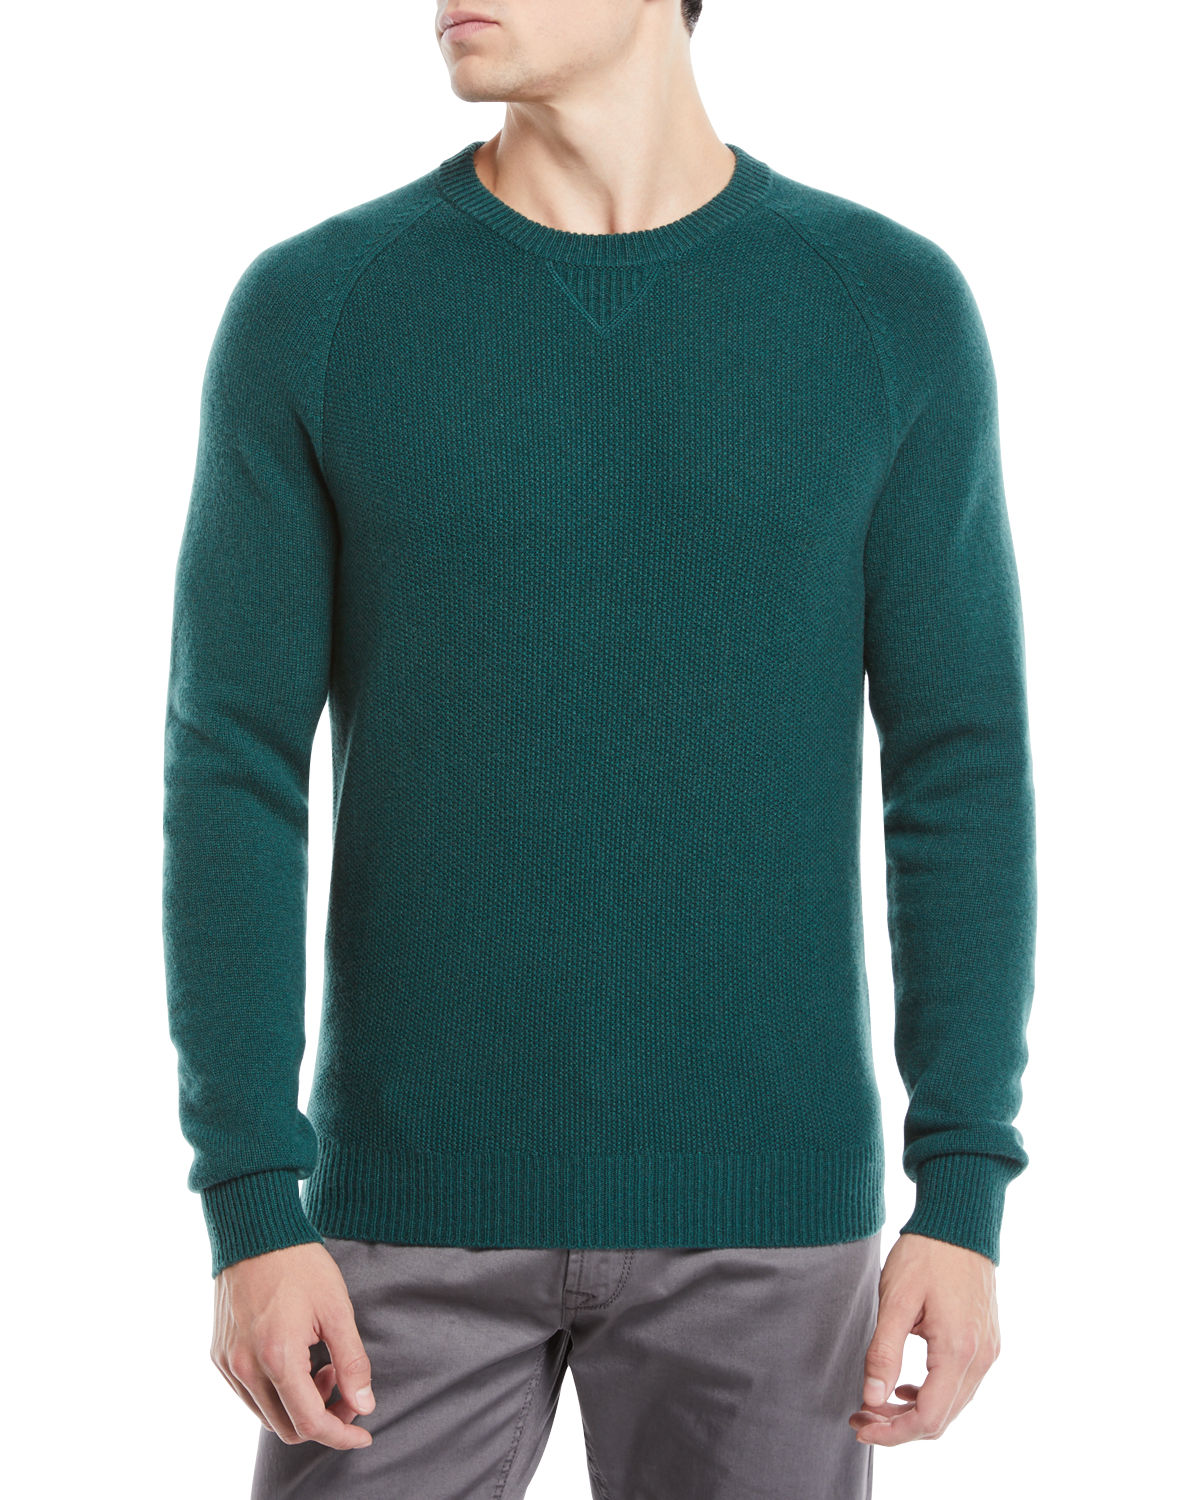 Men's Tuck-Stitch Cashmere Crewneck Sweater